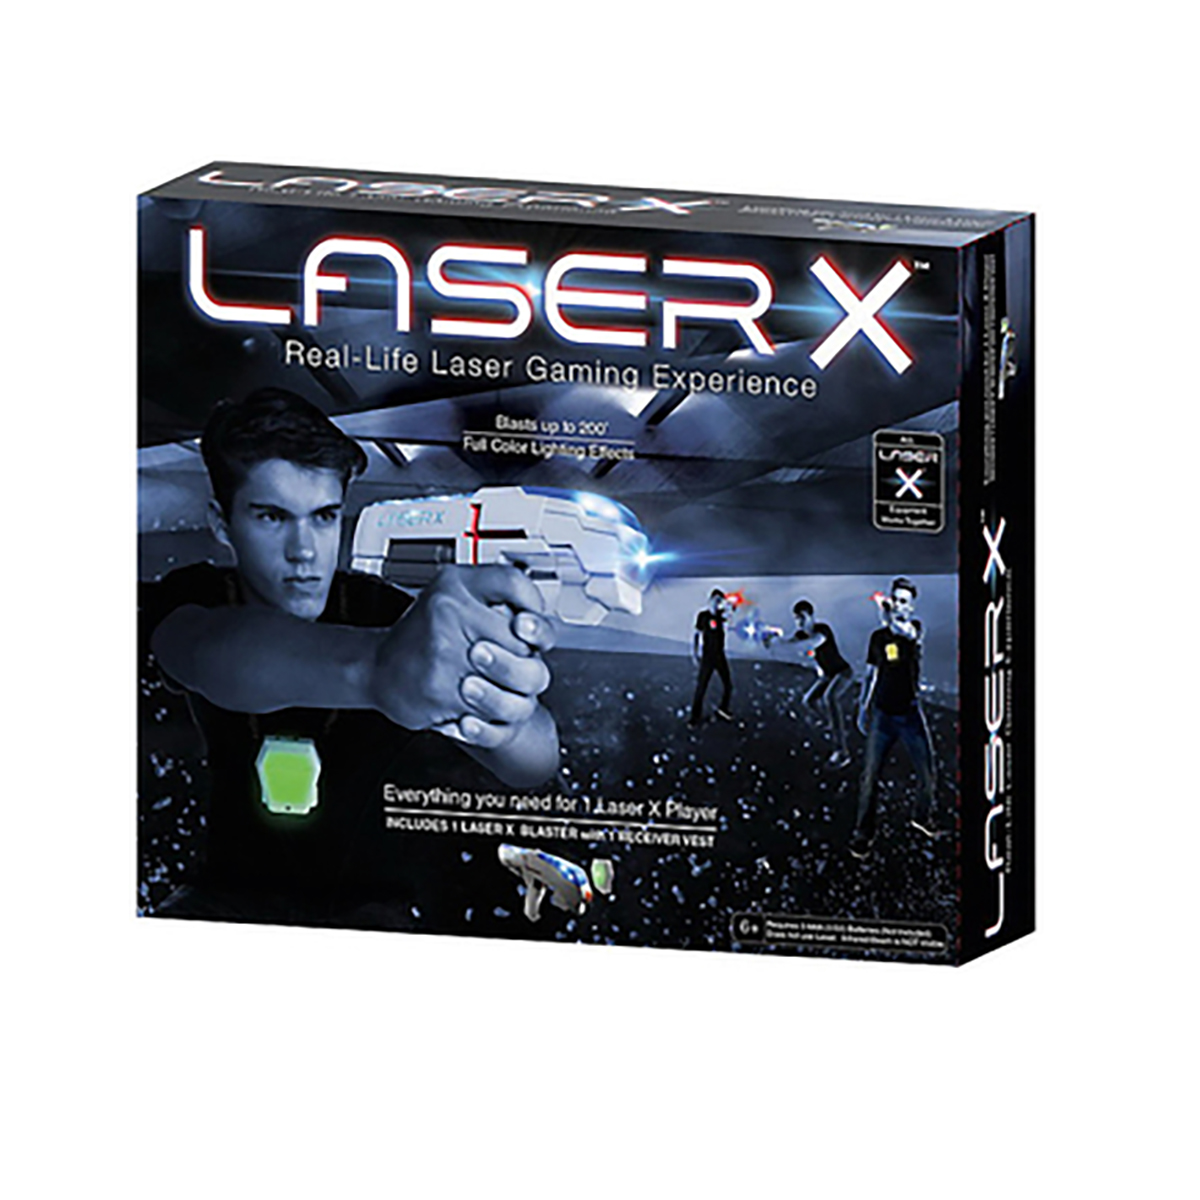 LASER X Toy Guns 8335486 for boys Arms Baby boy Kids Games Toys Outdoor Fun & Sports